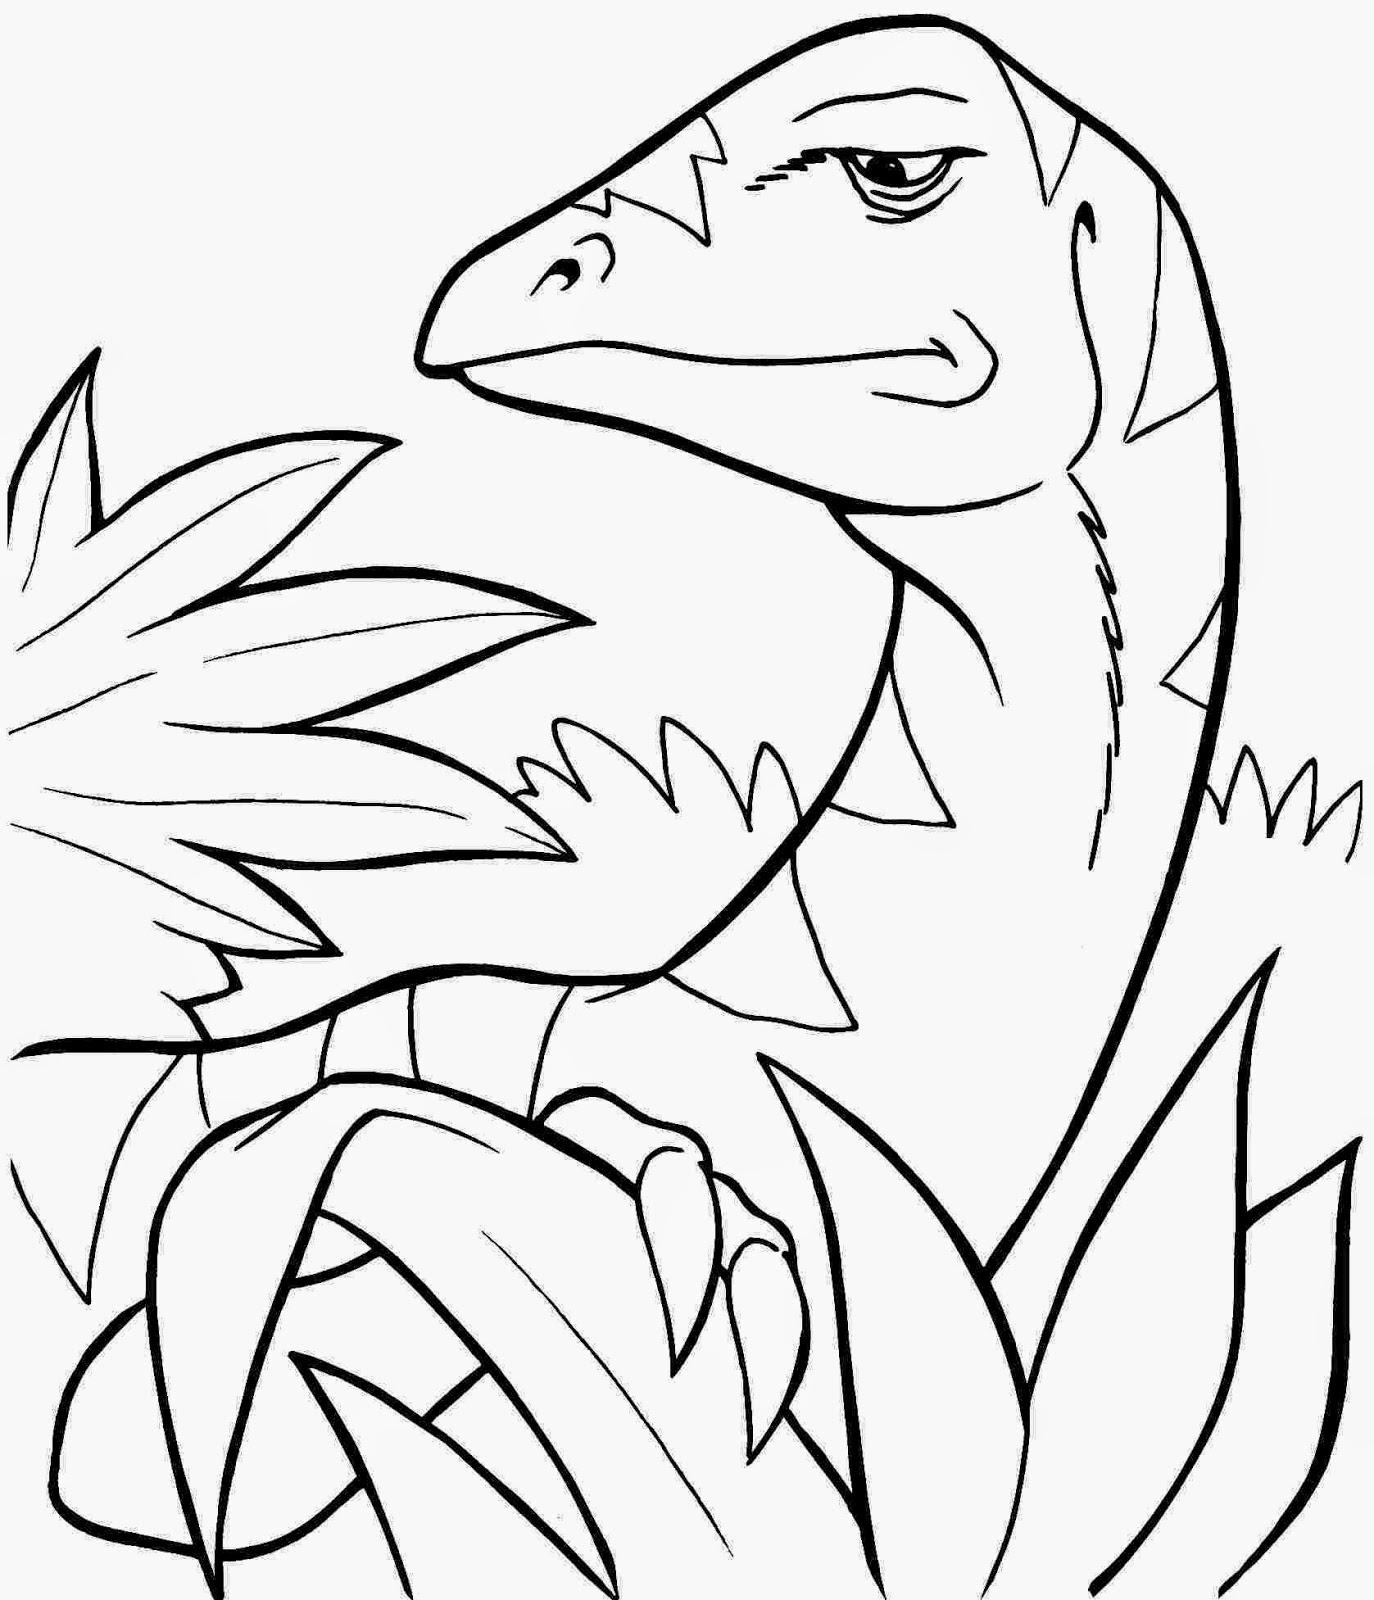 dinosaurs pictures to color dinosaur 12 coloringcolorcom pictures to dinosaurs color